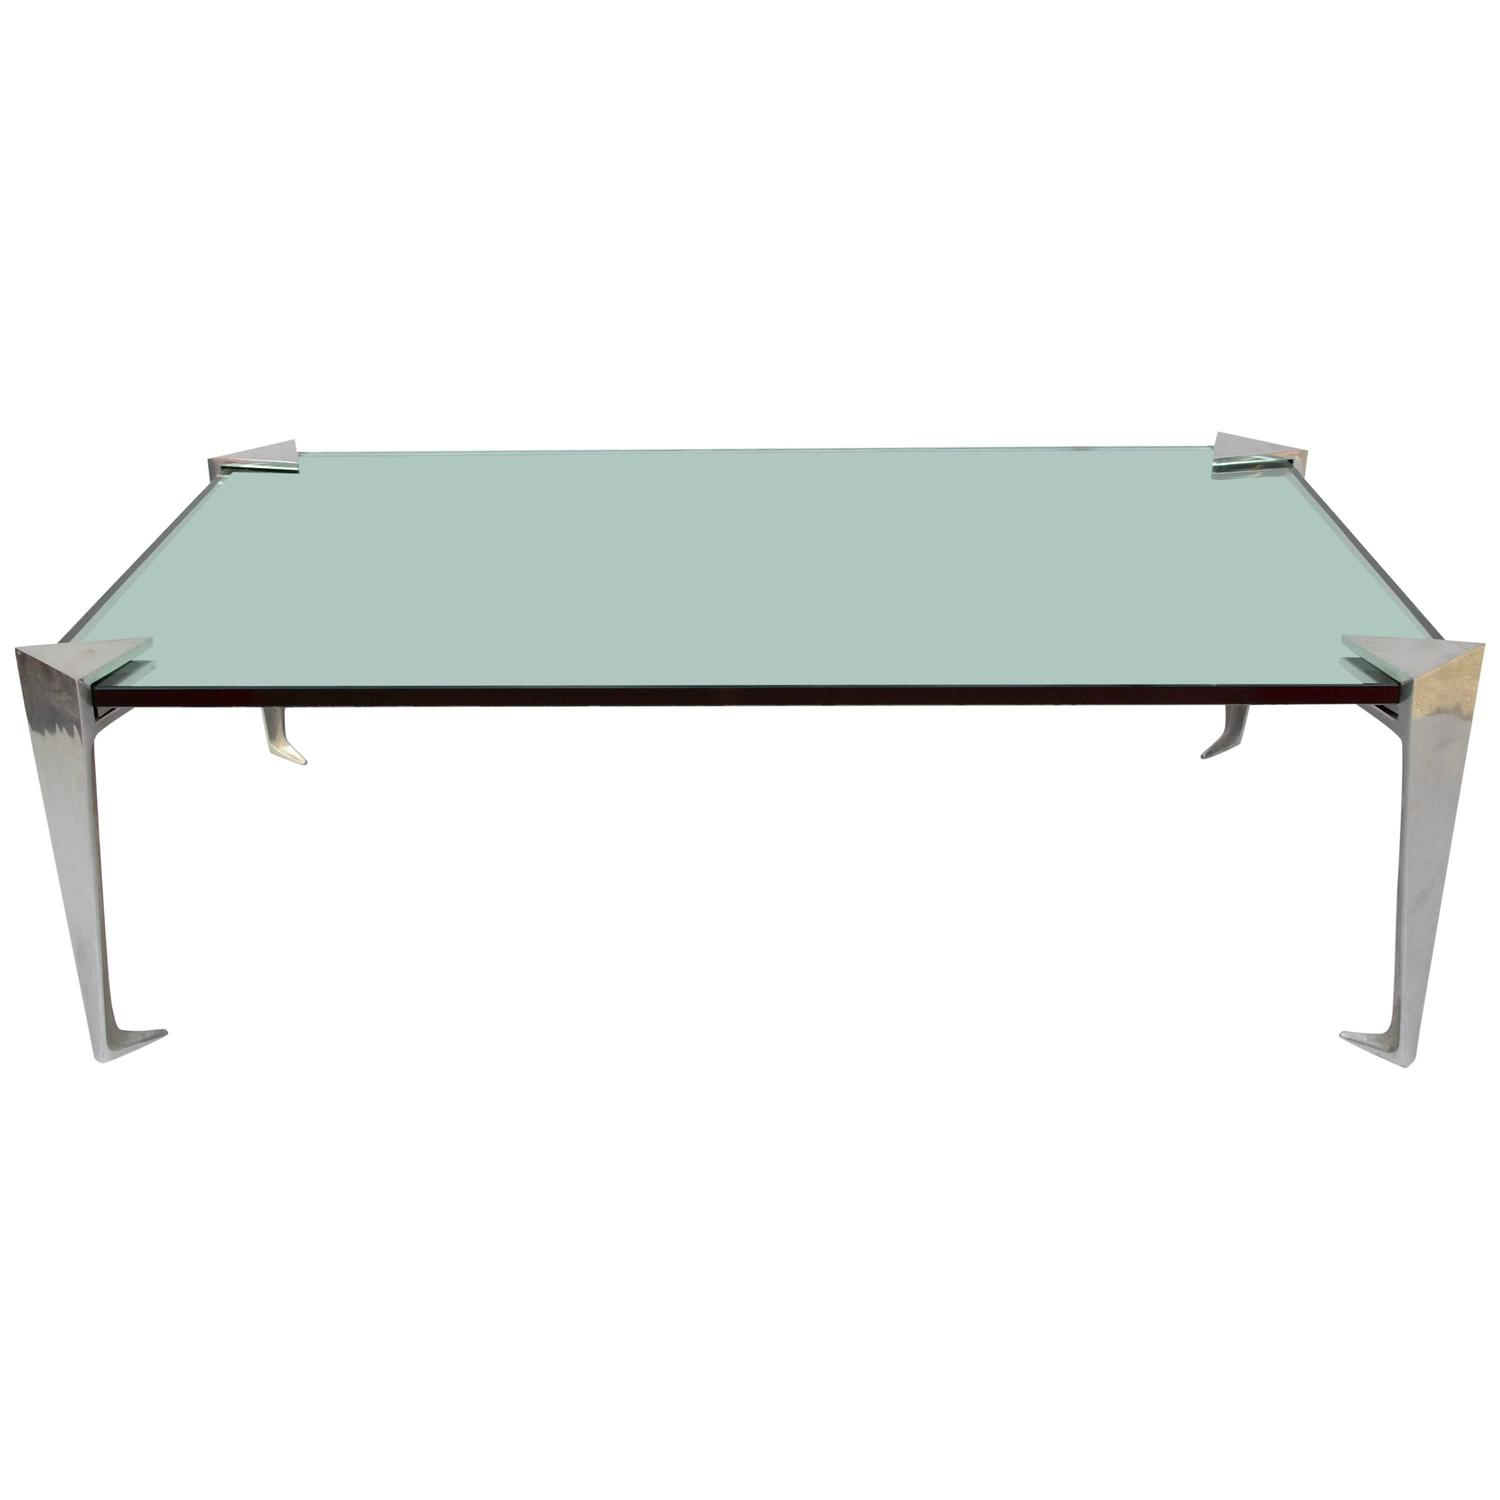 Aluminium And Mirror Top Coffee Table From 1980 For Sale At 1stdibs